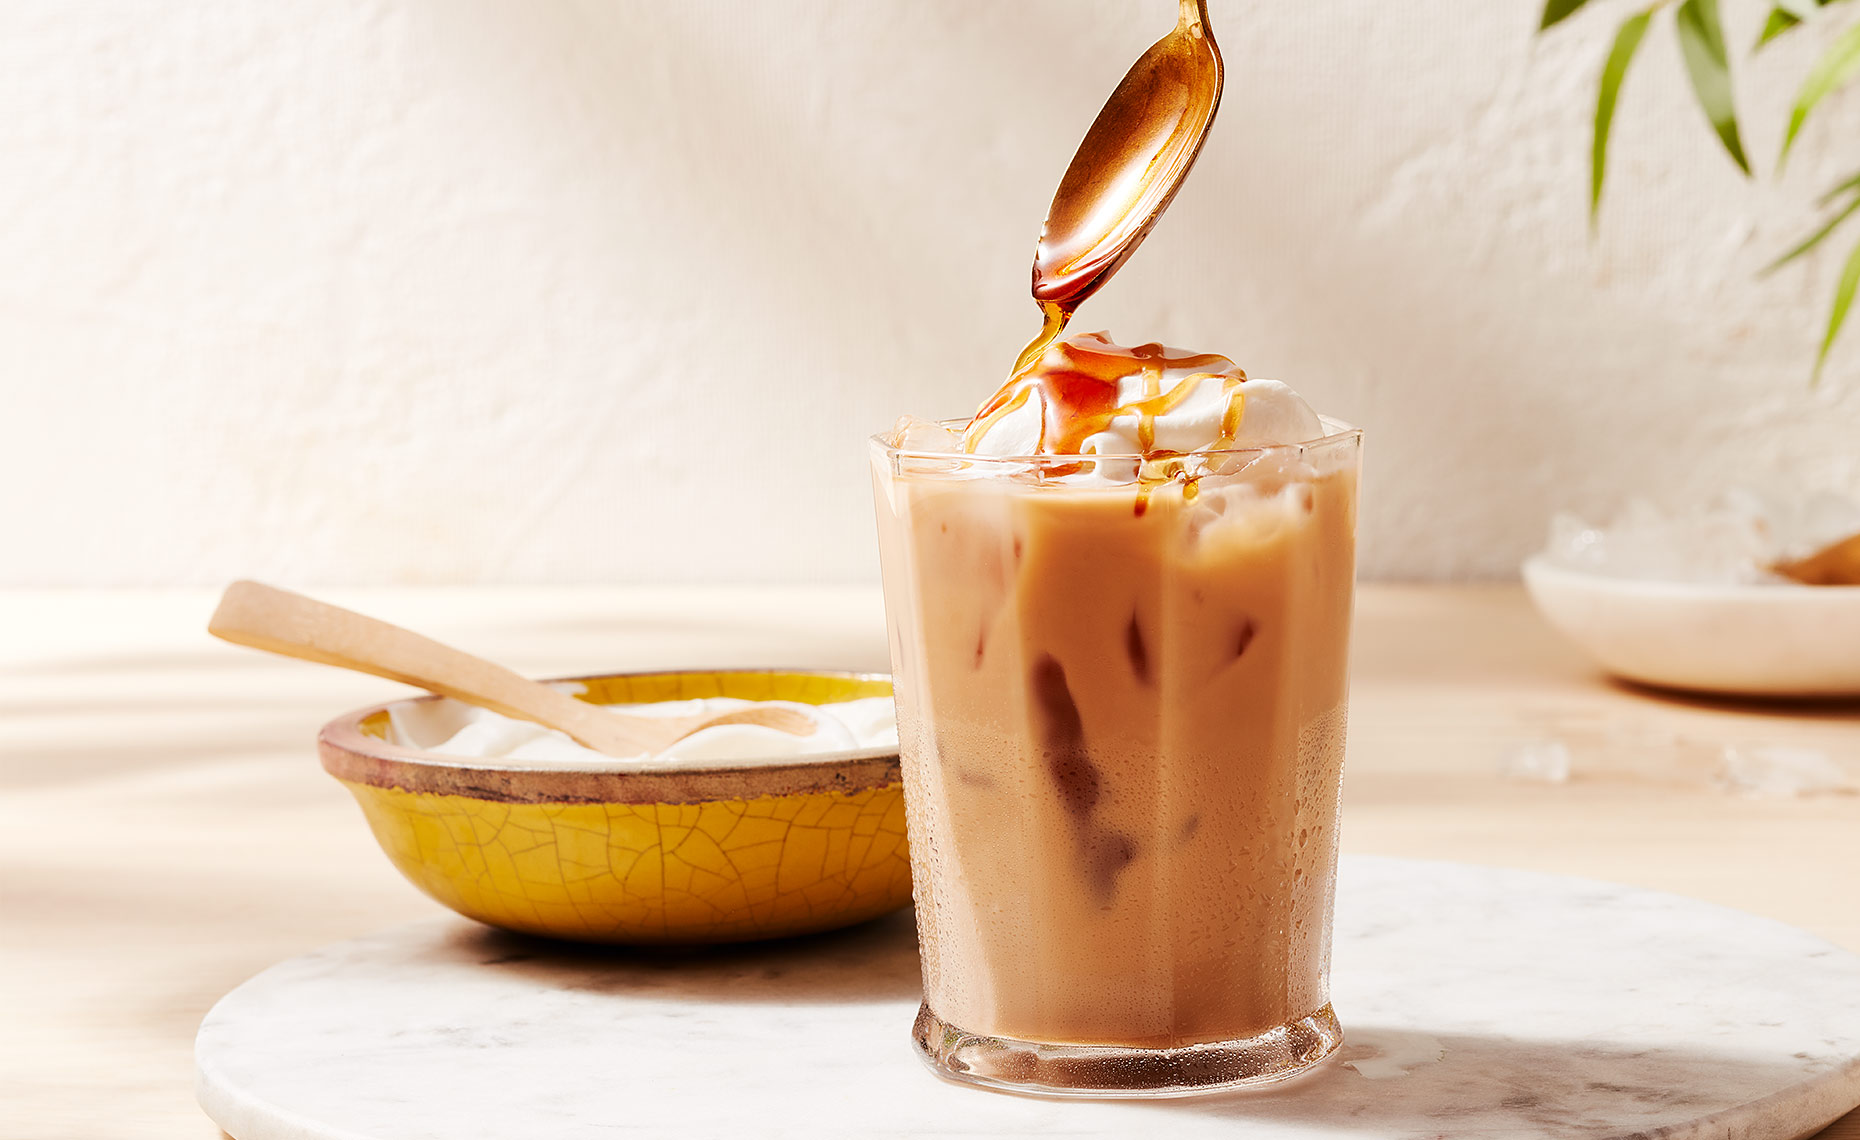 15_RecipeBeauty_LatteColdBrew_V01_WEB